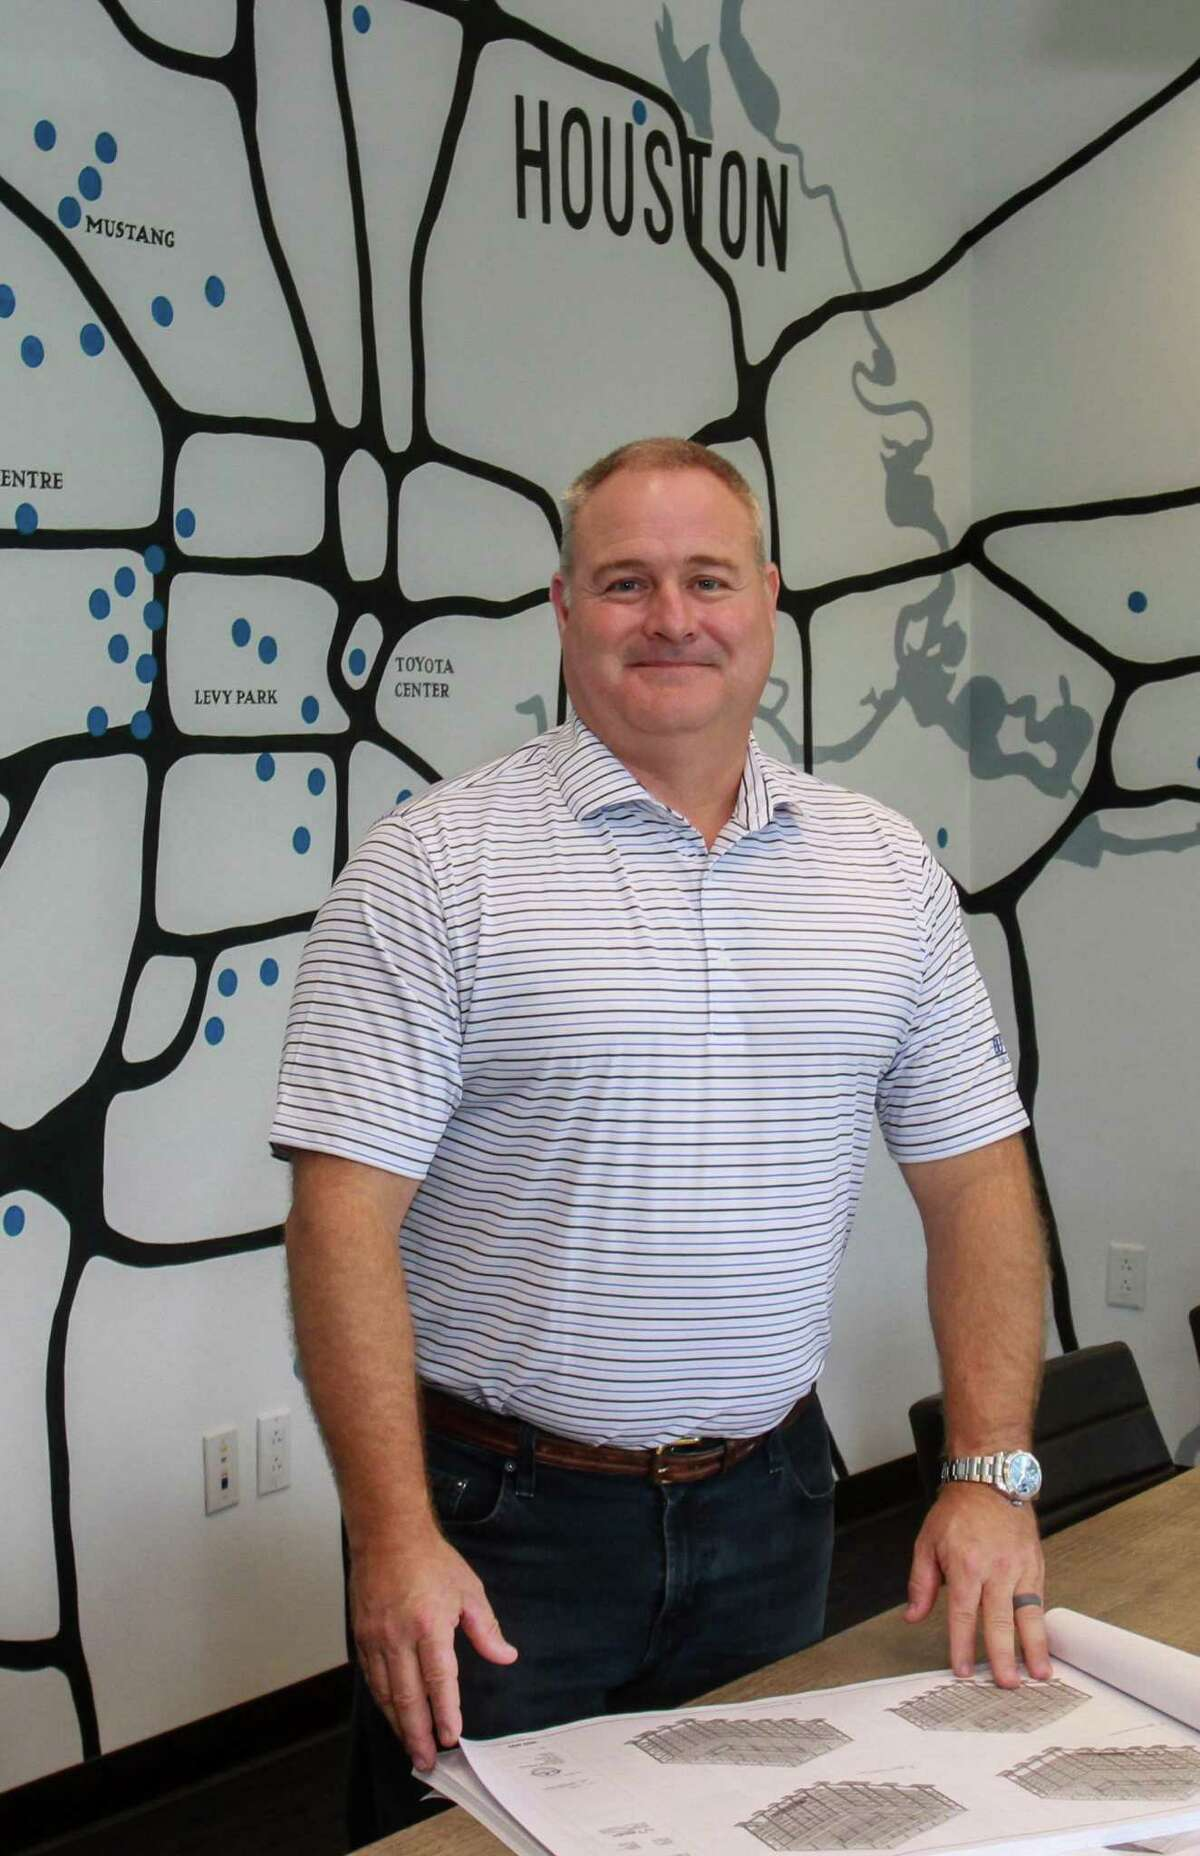 Shawn McAlpin, CEO of Burton Construction in a conference room with a map showing the location of some of their projects in their office in Houston on September 30, 2019.